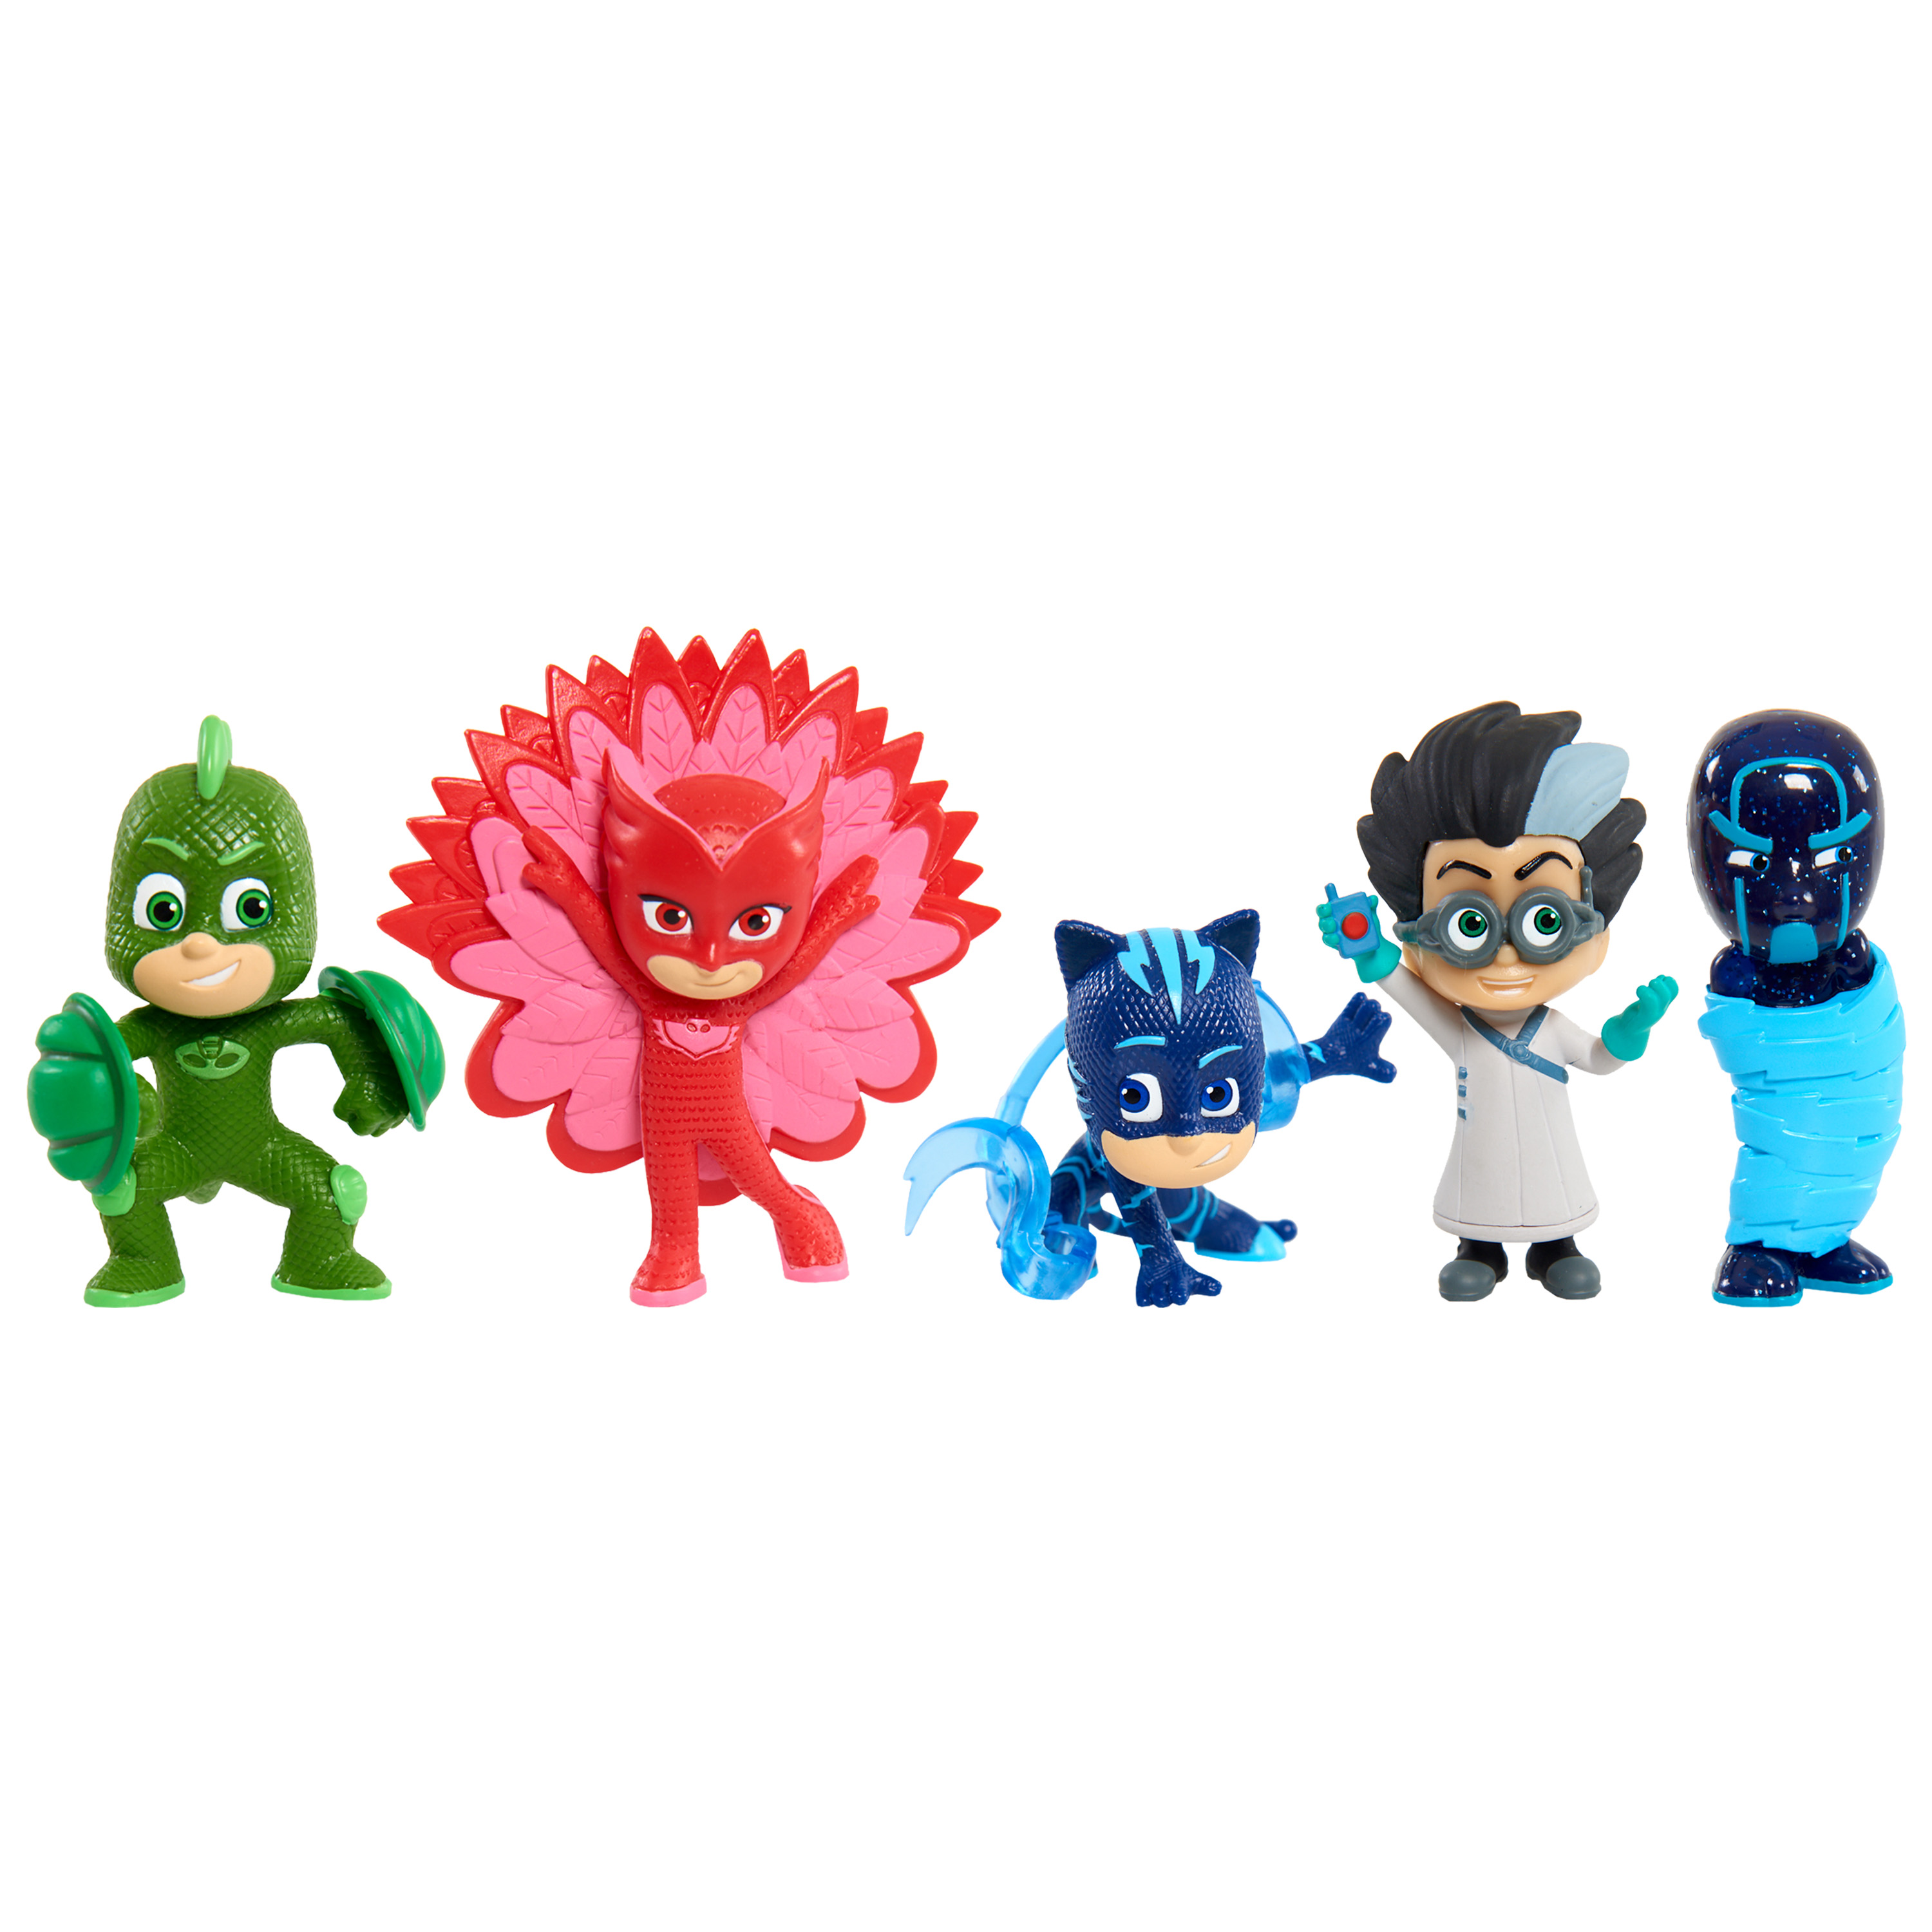 PJ Masks Collectible Figure Set - 5 Pack